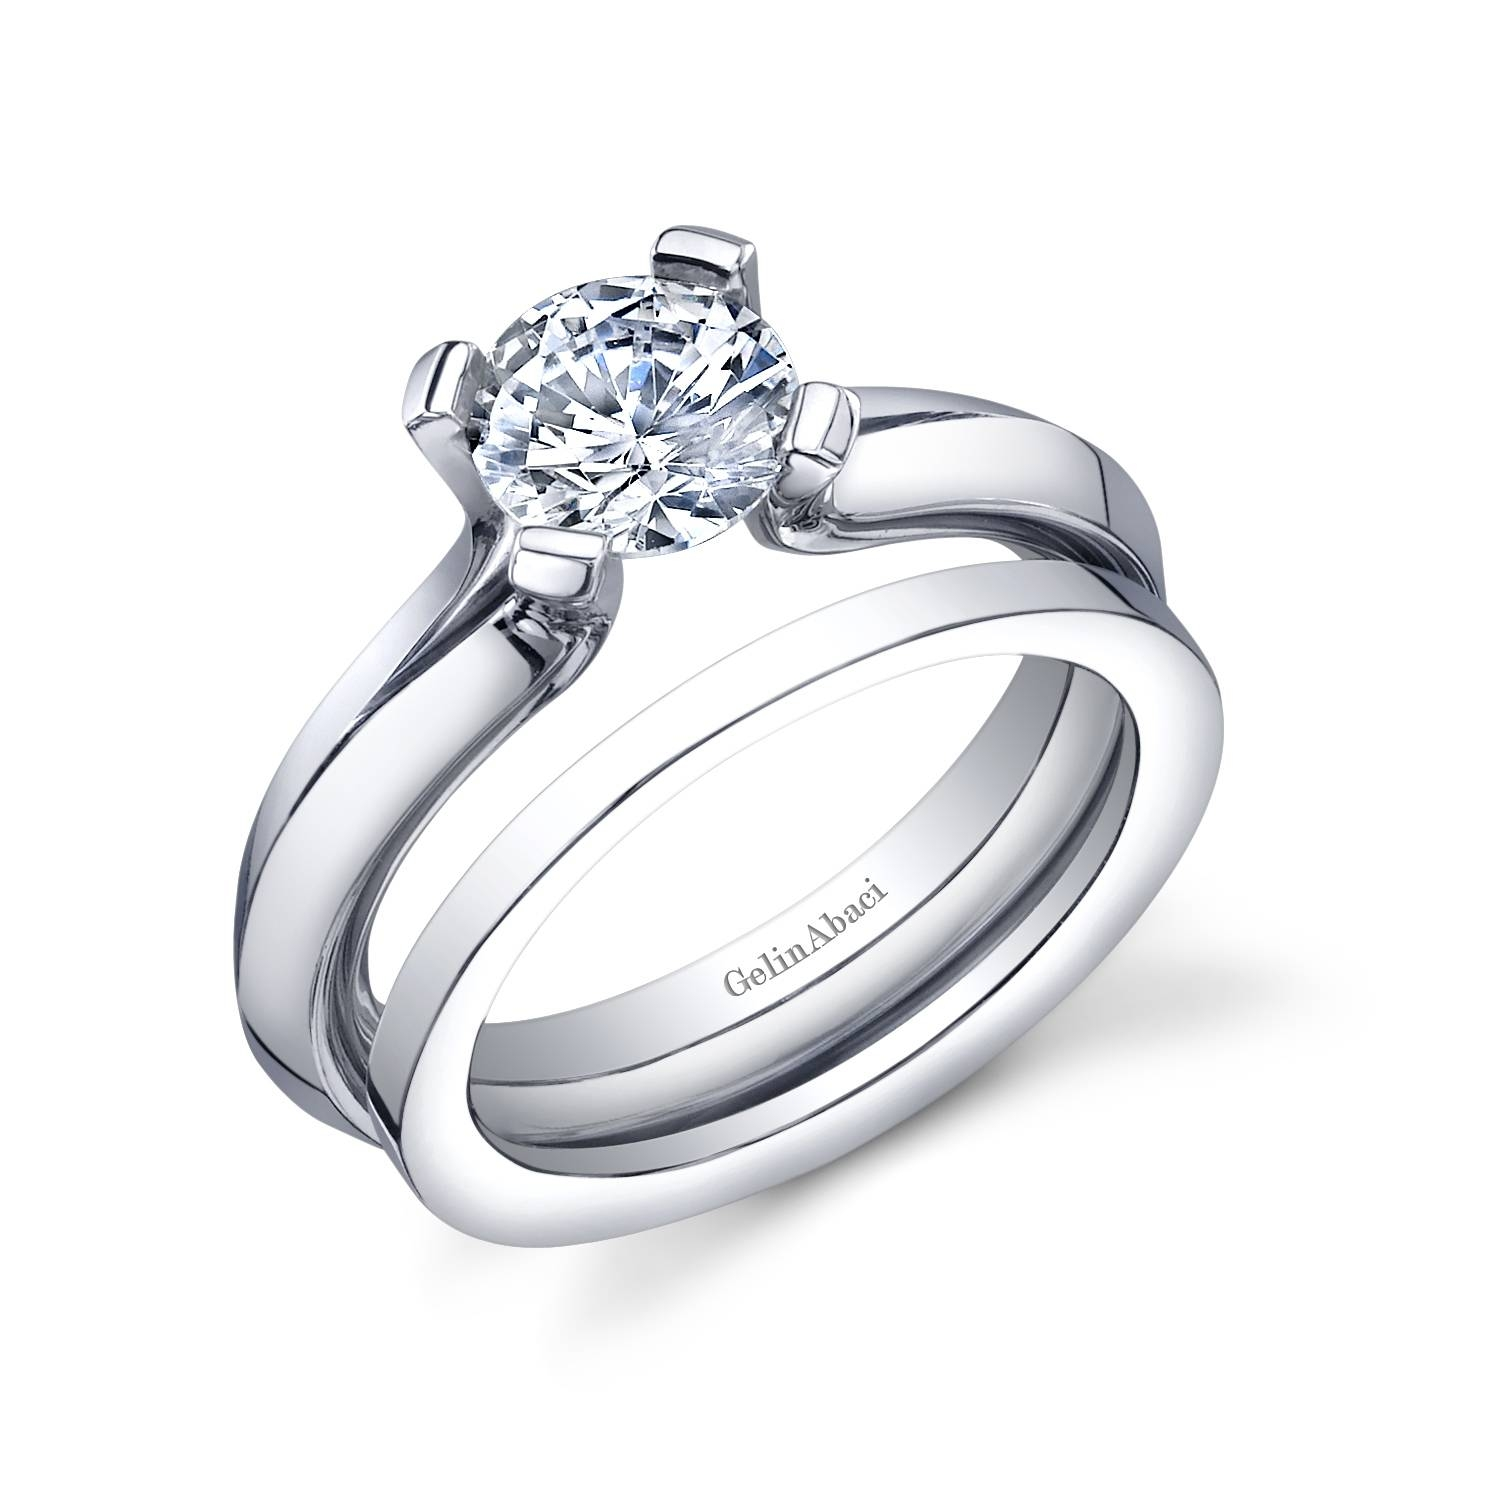 Platinum Diamond Wedding Rings | Ipunya Intended For Platinum Diamond Wedding Rings (View 13 of 15)